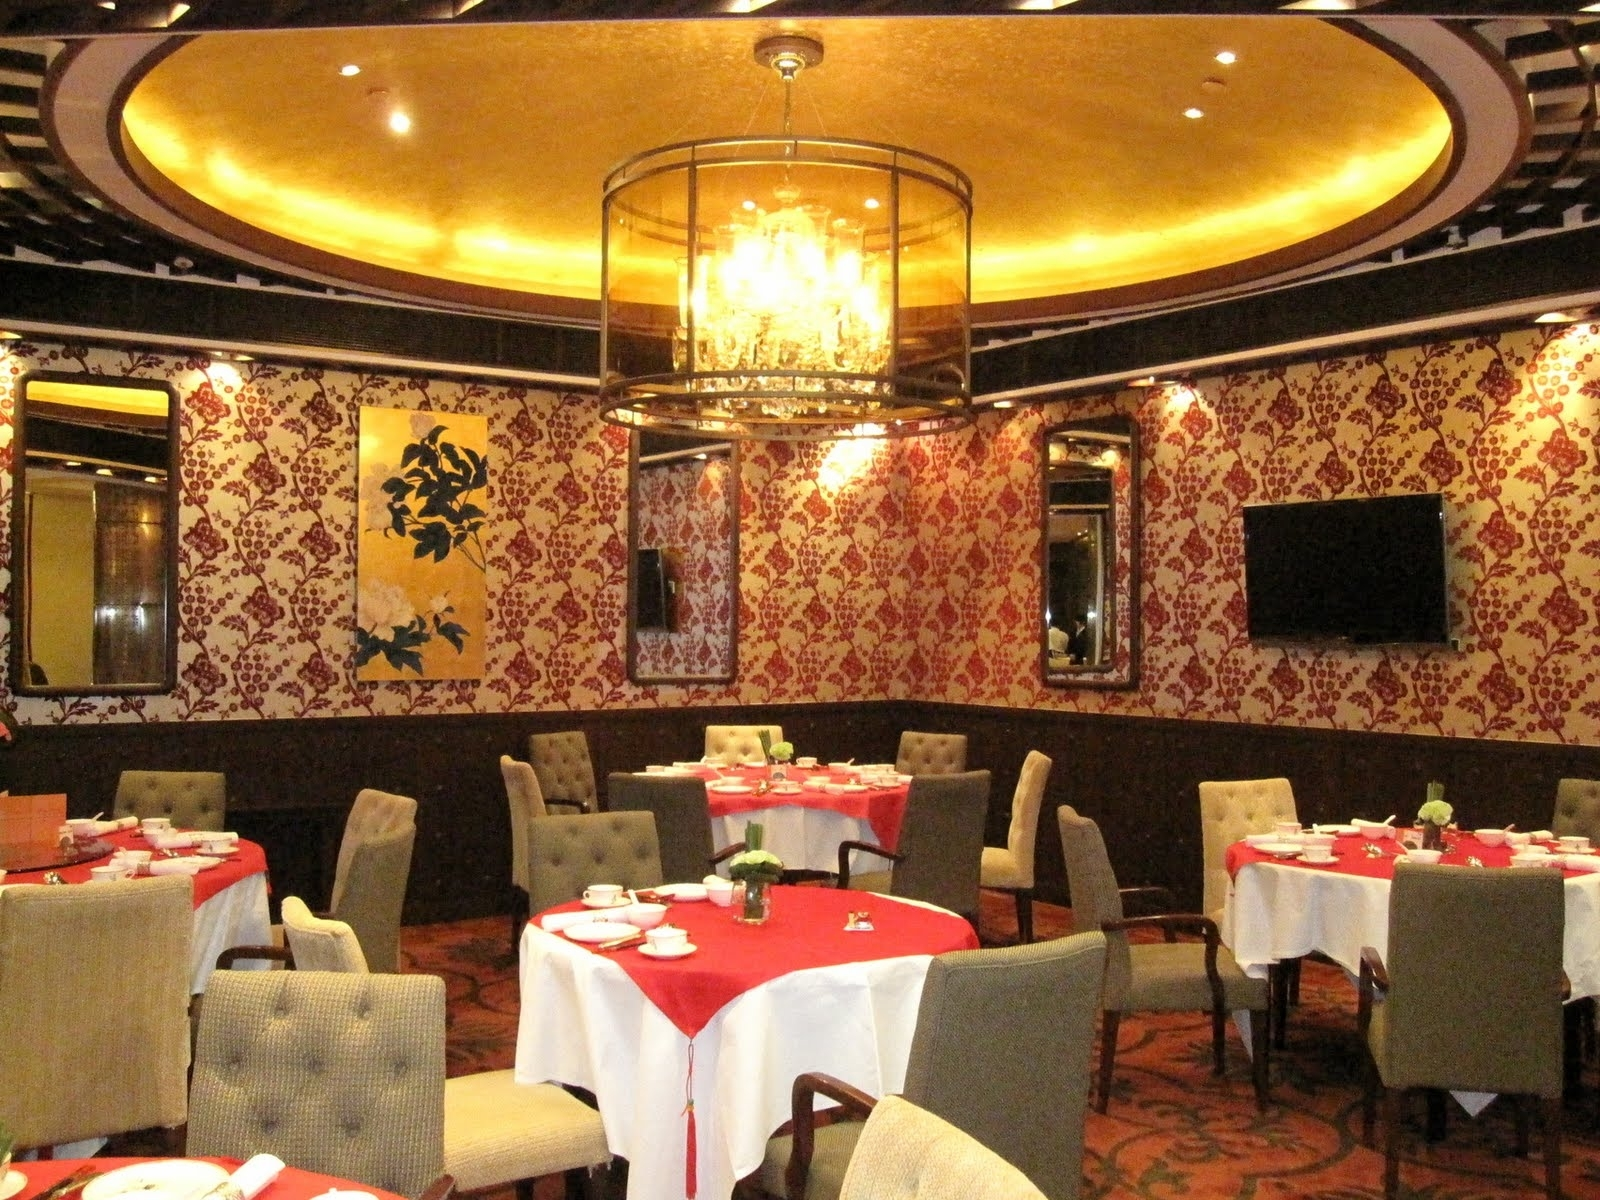 Fashion Pulis: My Favorite Restaurant In Hk: Peking Garden with regard to Peking Garden Restaurant Alexandra House Hong Kong